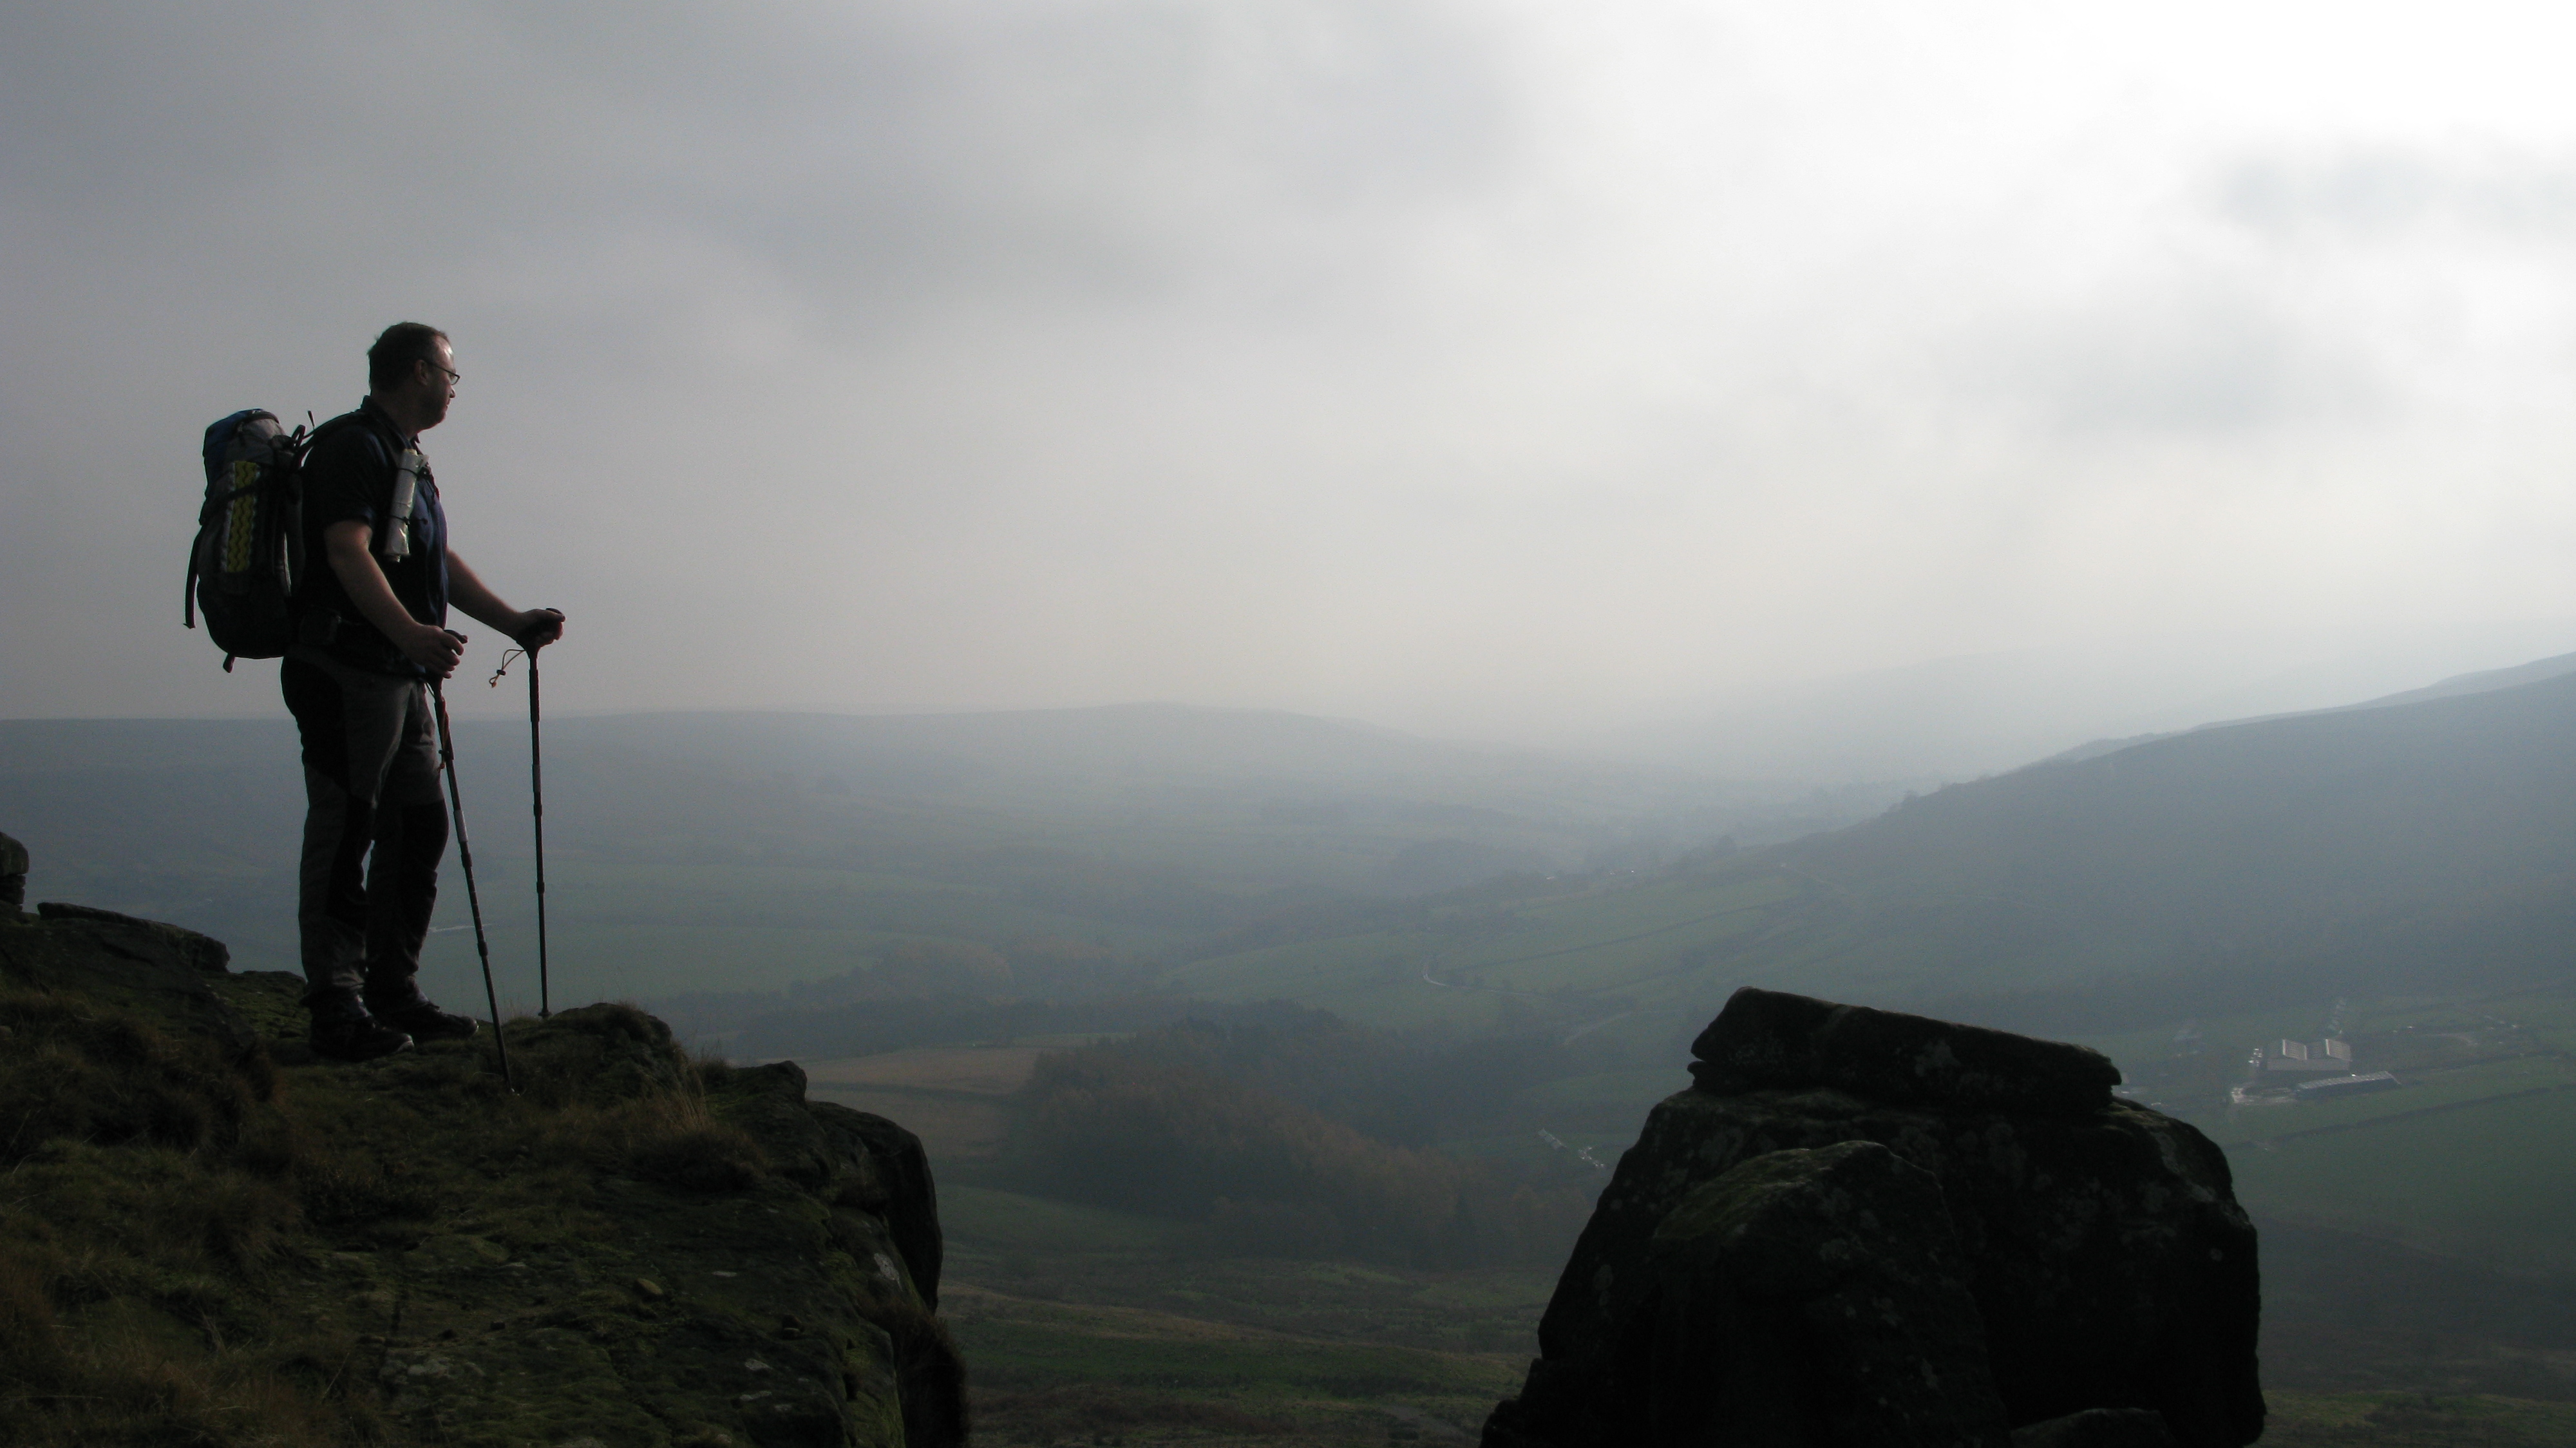 Three Points of the Compass when last visiting the Wain Stones in 2014